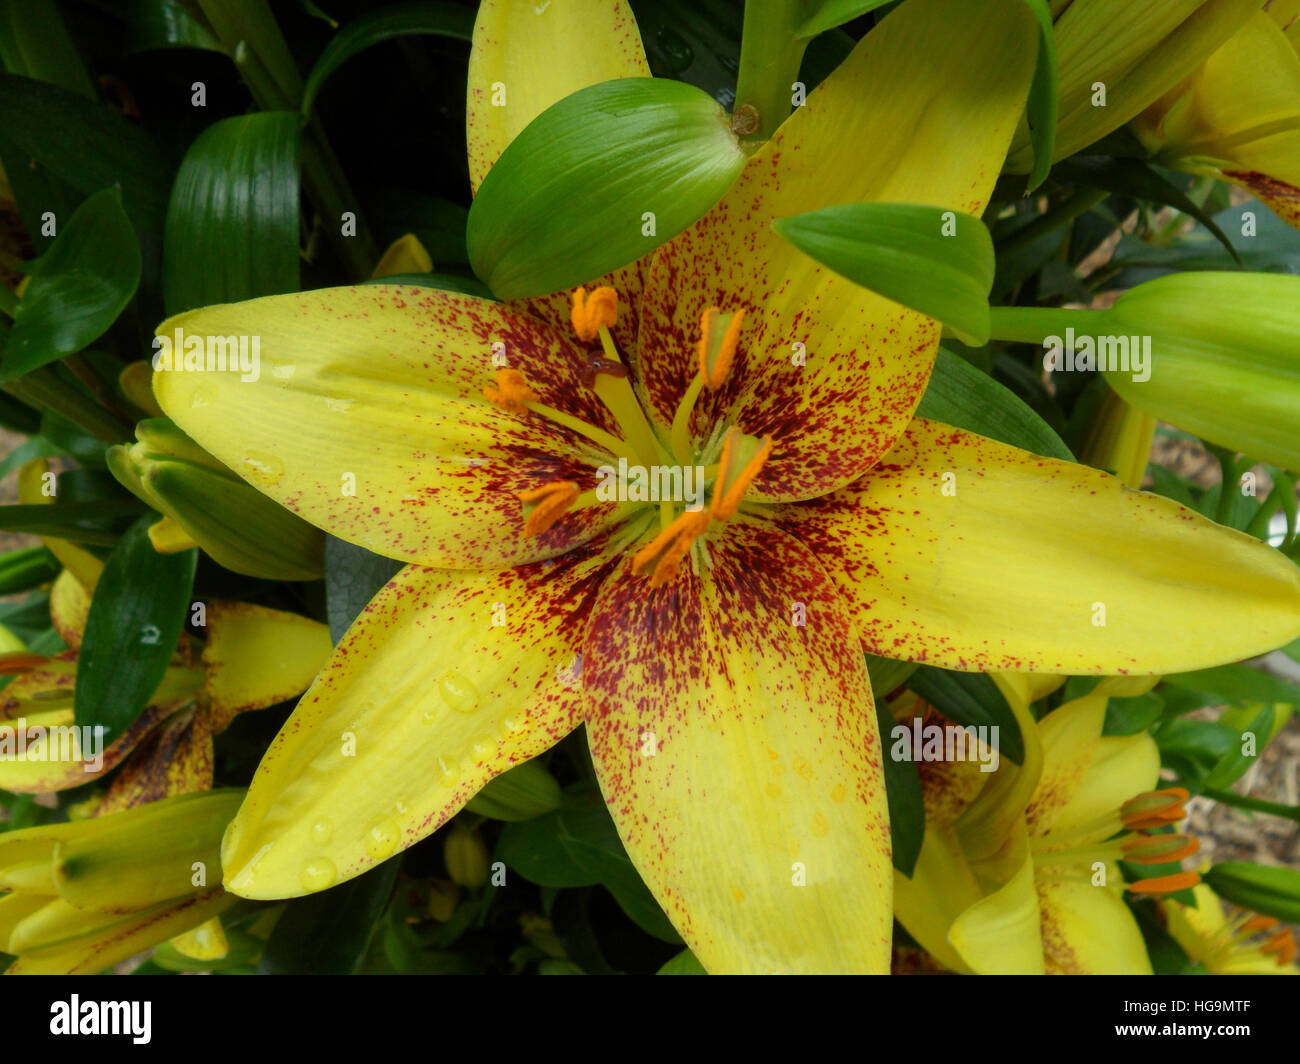 Close up of blooming yellow and brown two-tone Lily with orange velvet pollen - Stock Image